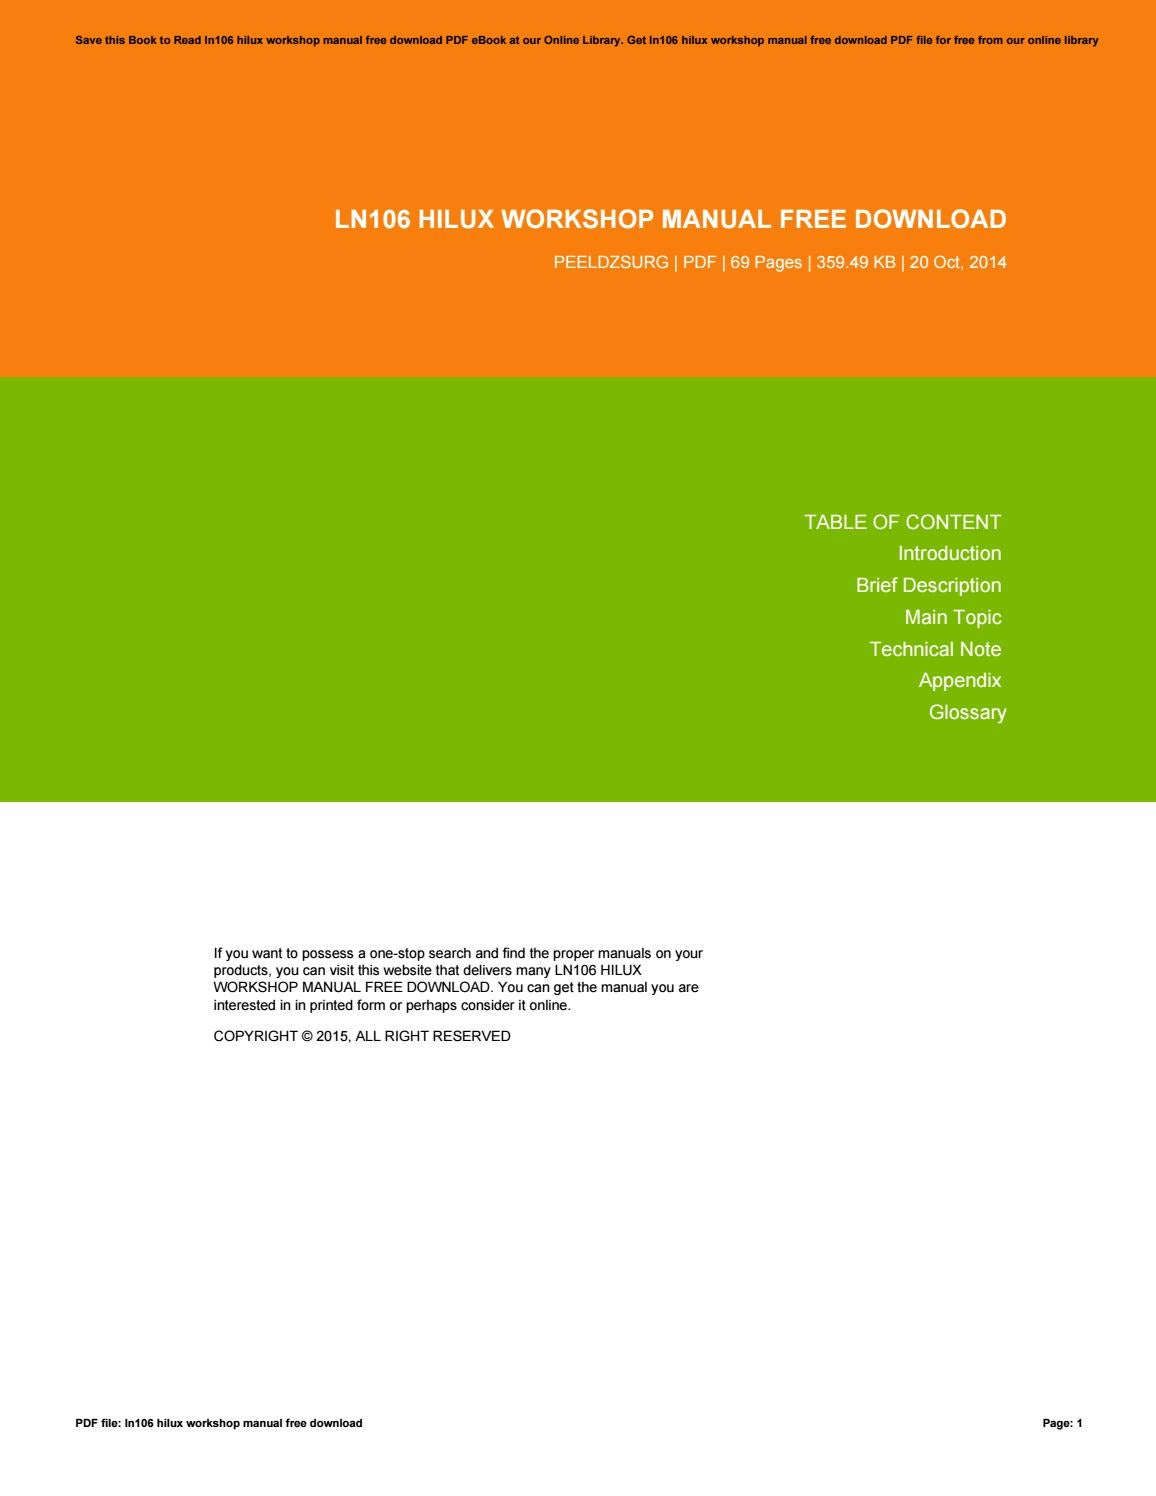 ln106 hilux workshop manual free download by danielmunoz1628 issuu rh issuu com ln106 repair manual ln106 repair manual